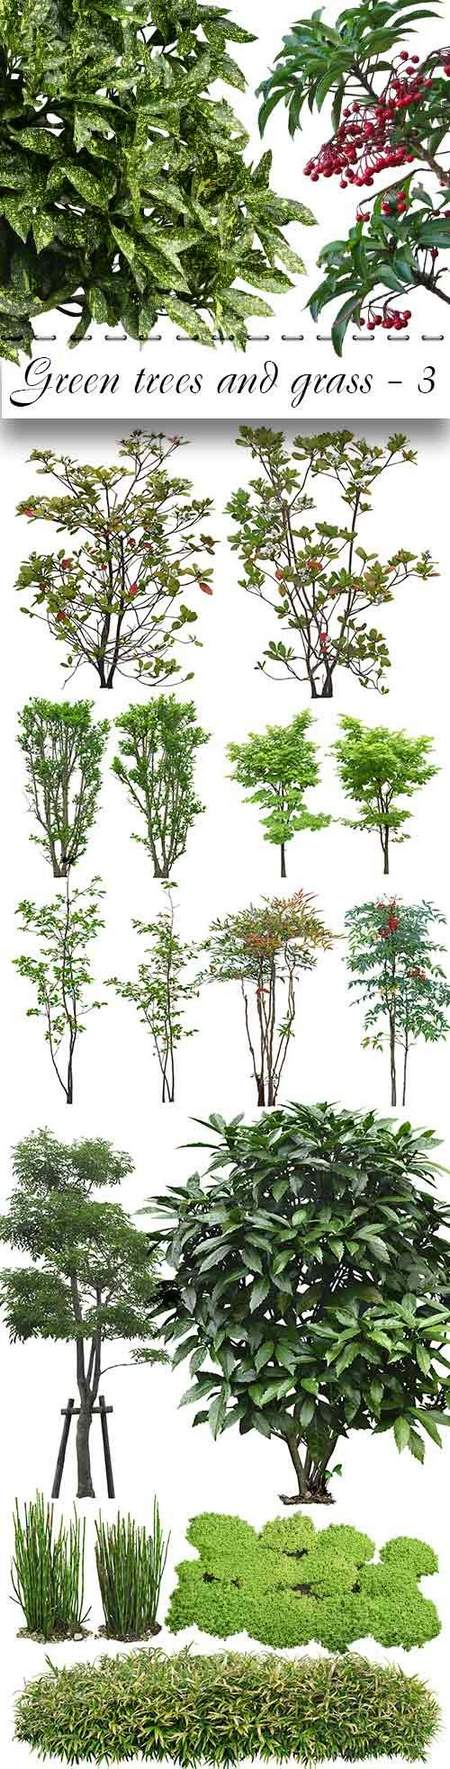 Green trees psd and grass psd - free 25 psd files, free download